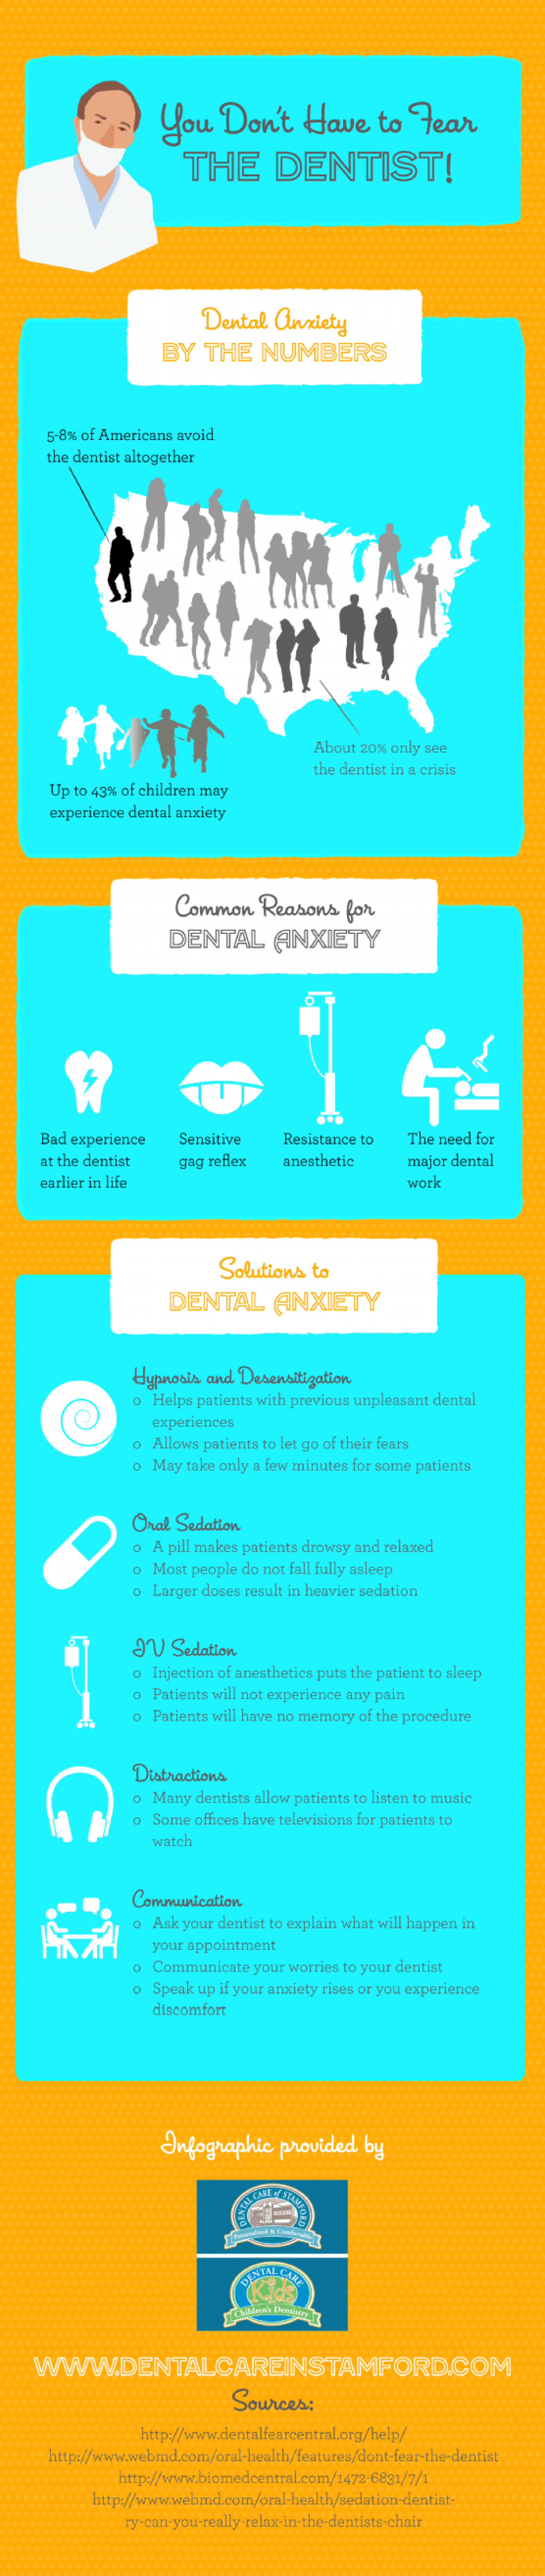 You Don't Have to Fear the Dentist! Infographic